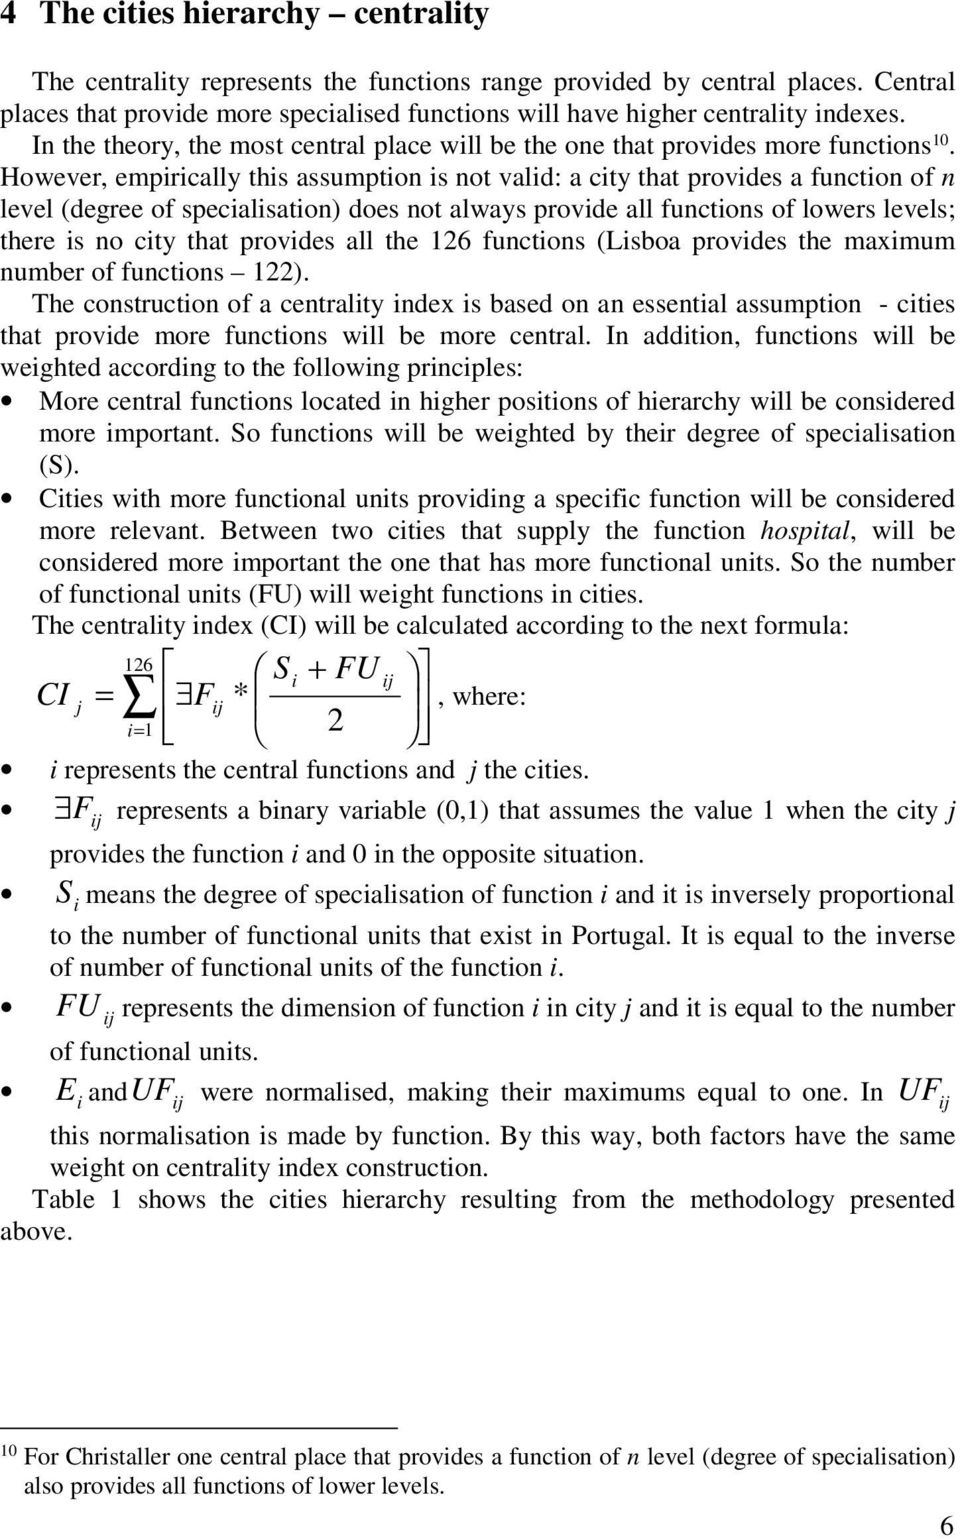 However, empirically this assumption is not valid: a city that provides a function of n level (degree of specialisation) does not always provide all functions of lowers levels; there is no city that